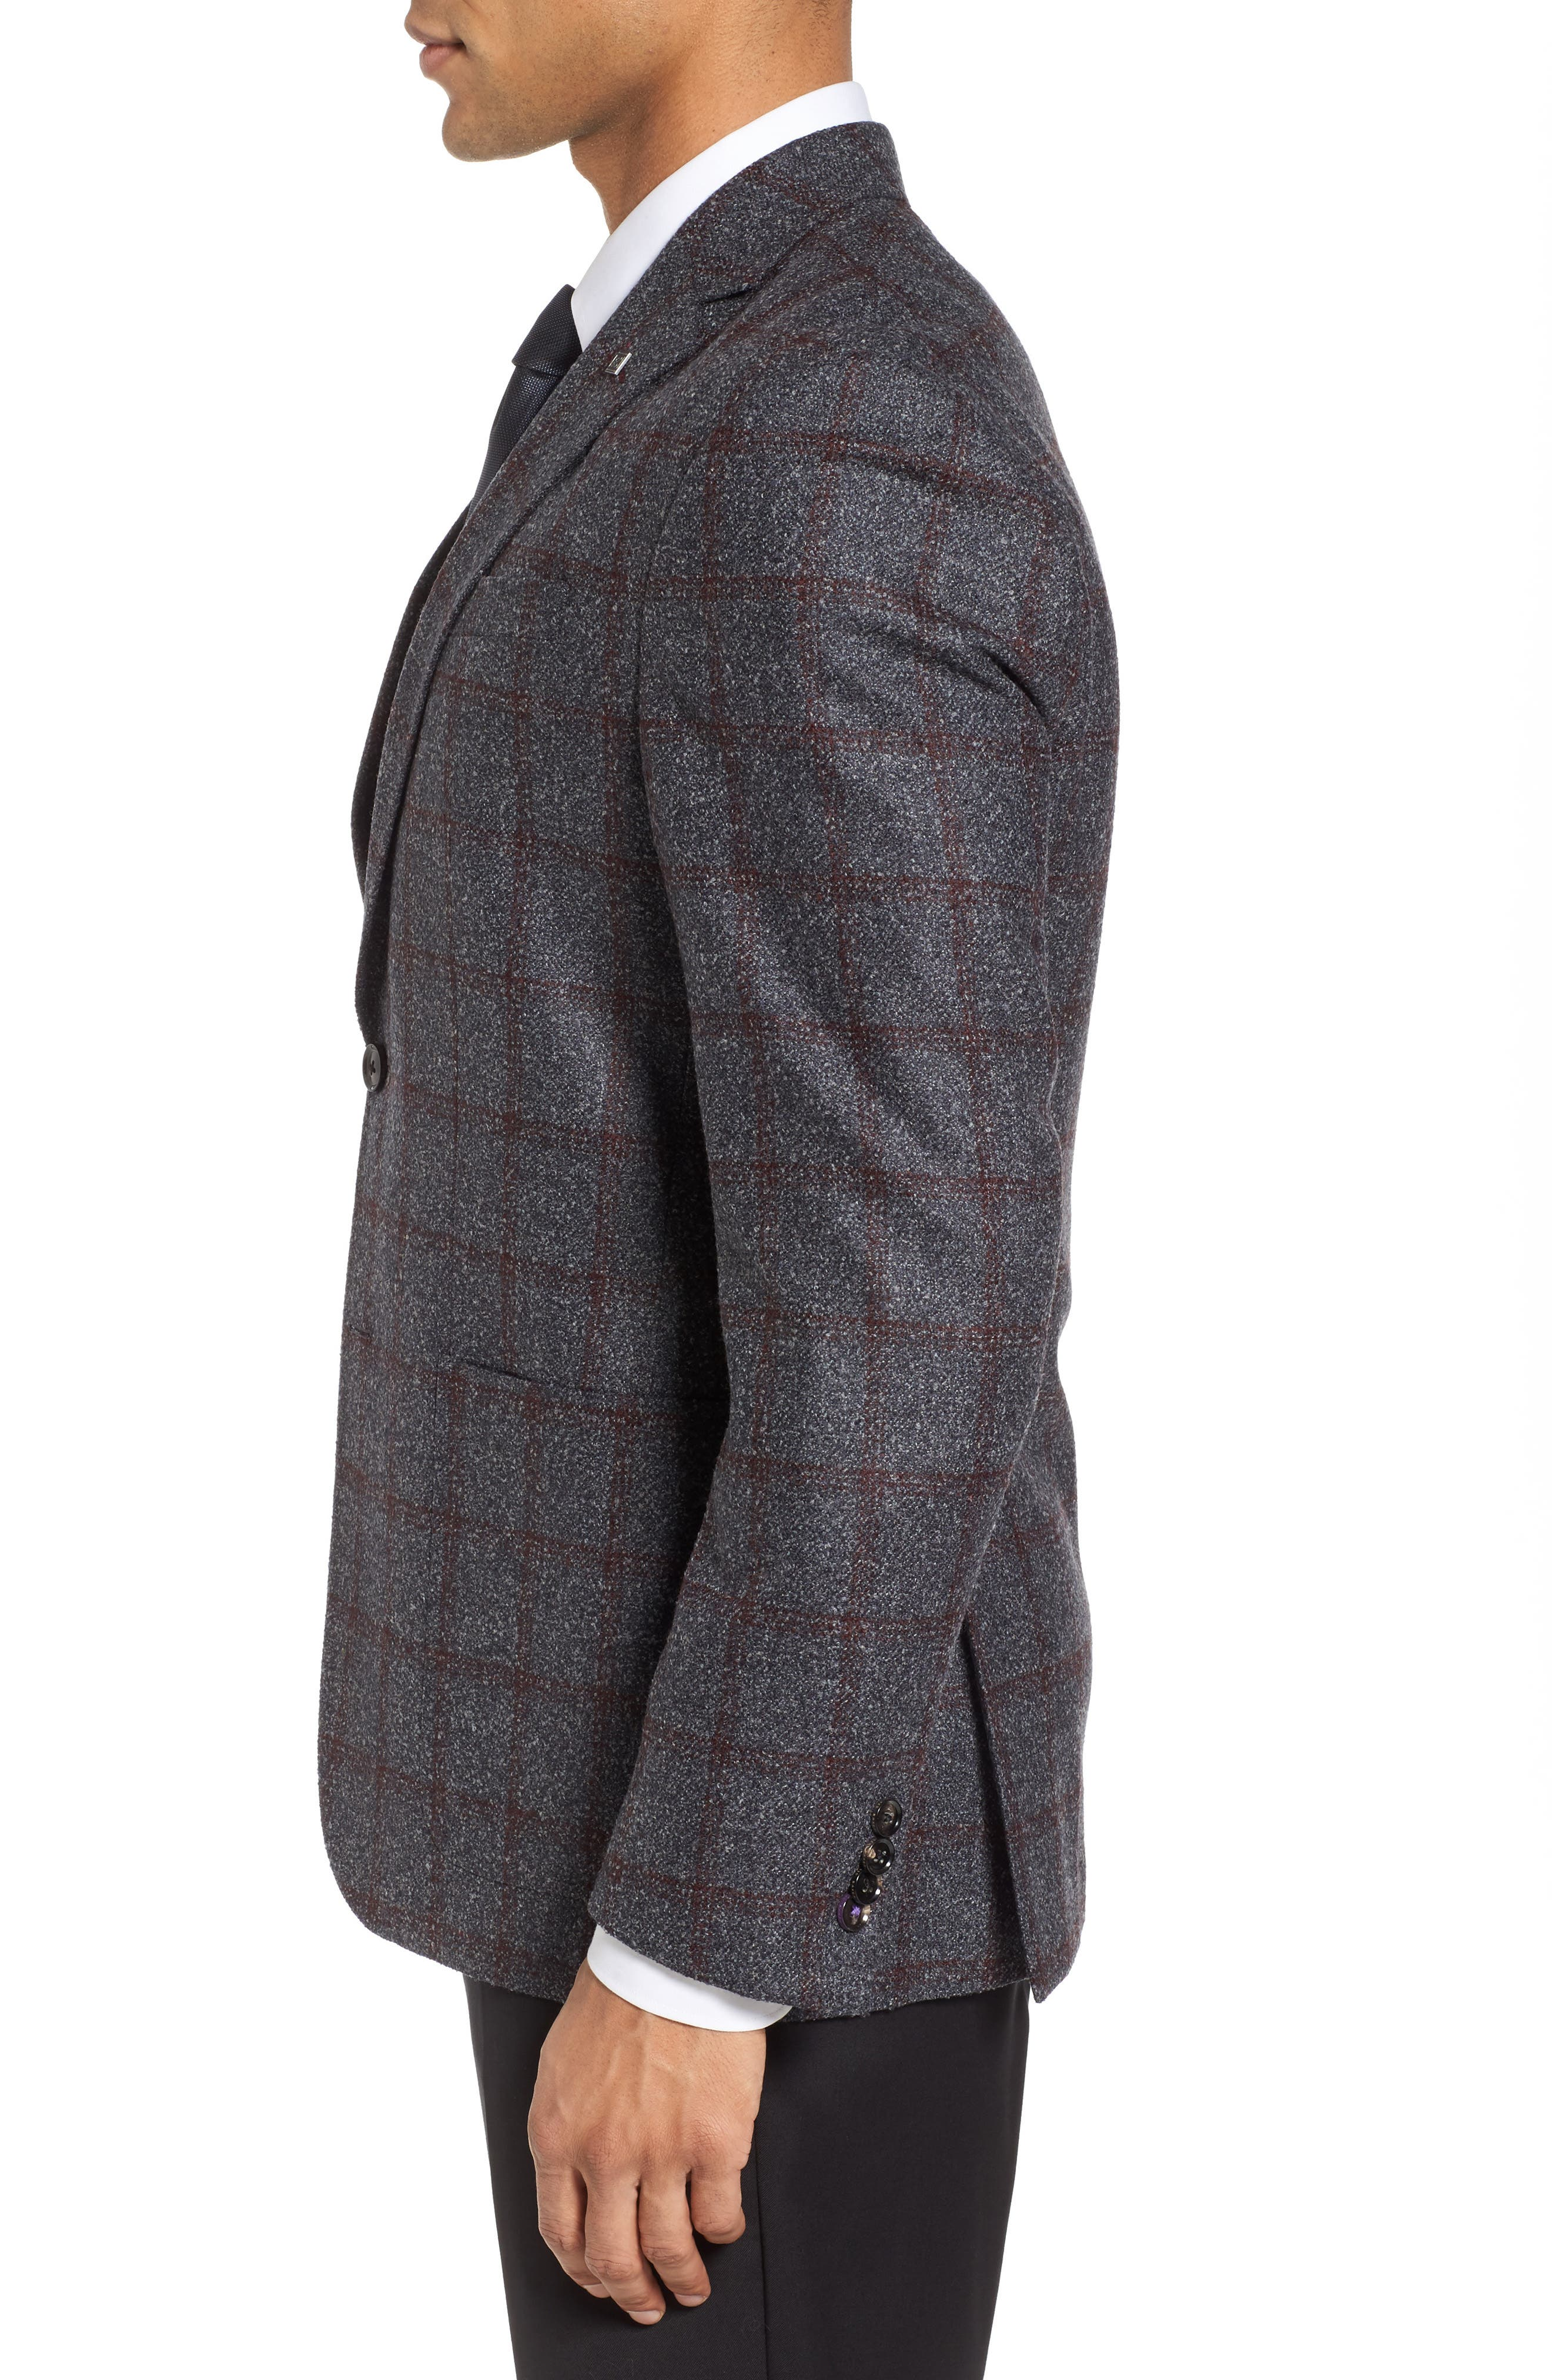 Kyle Trim Fit Windowpane Wool Blend Sport Coat,                             Alternate thumbnail 3, color,                             020